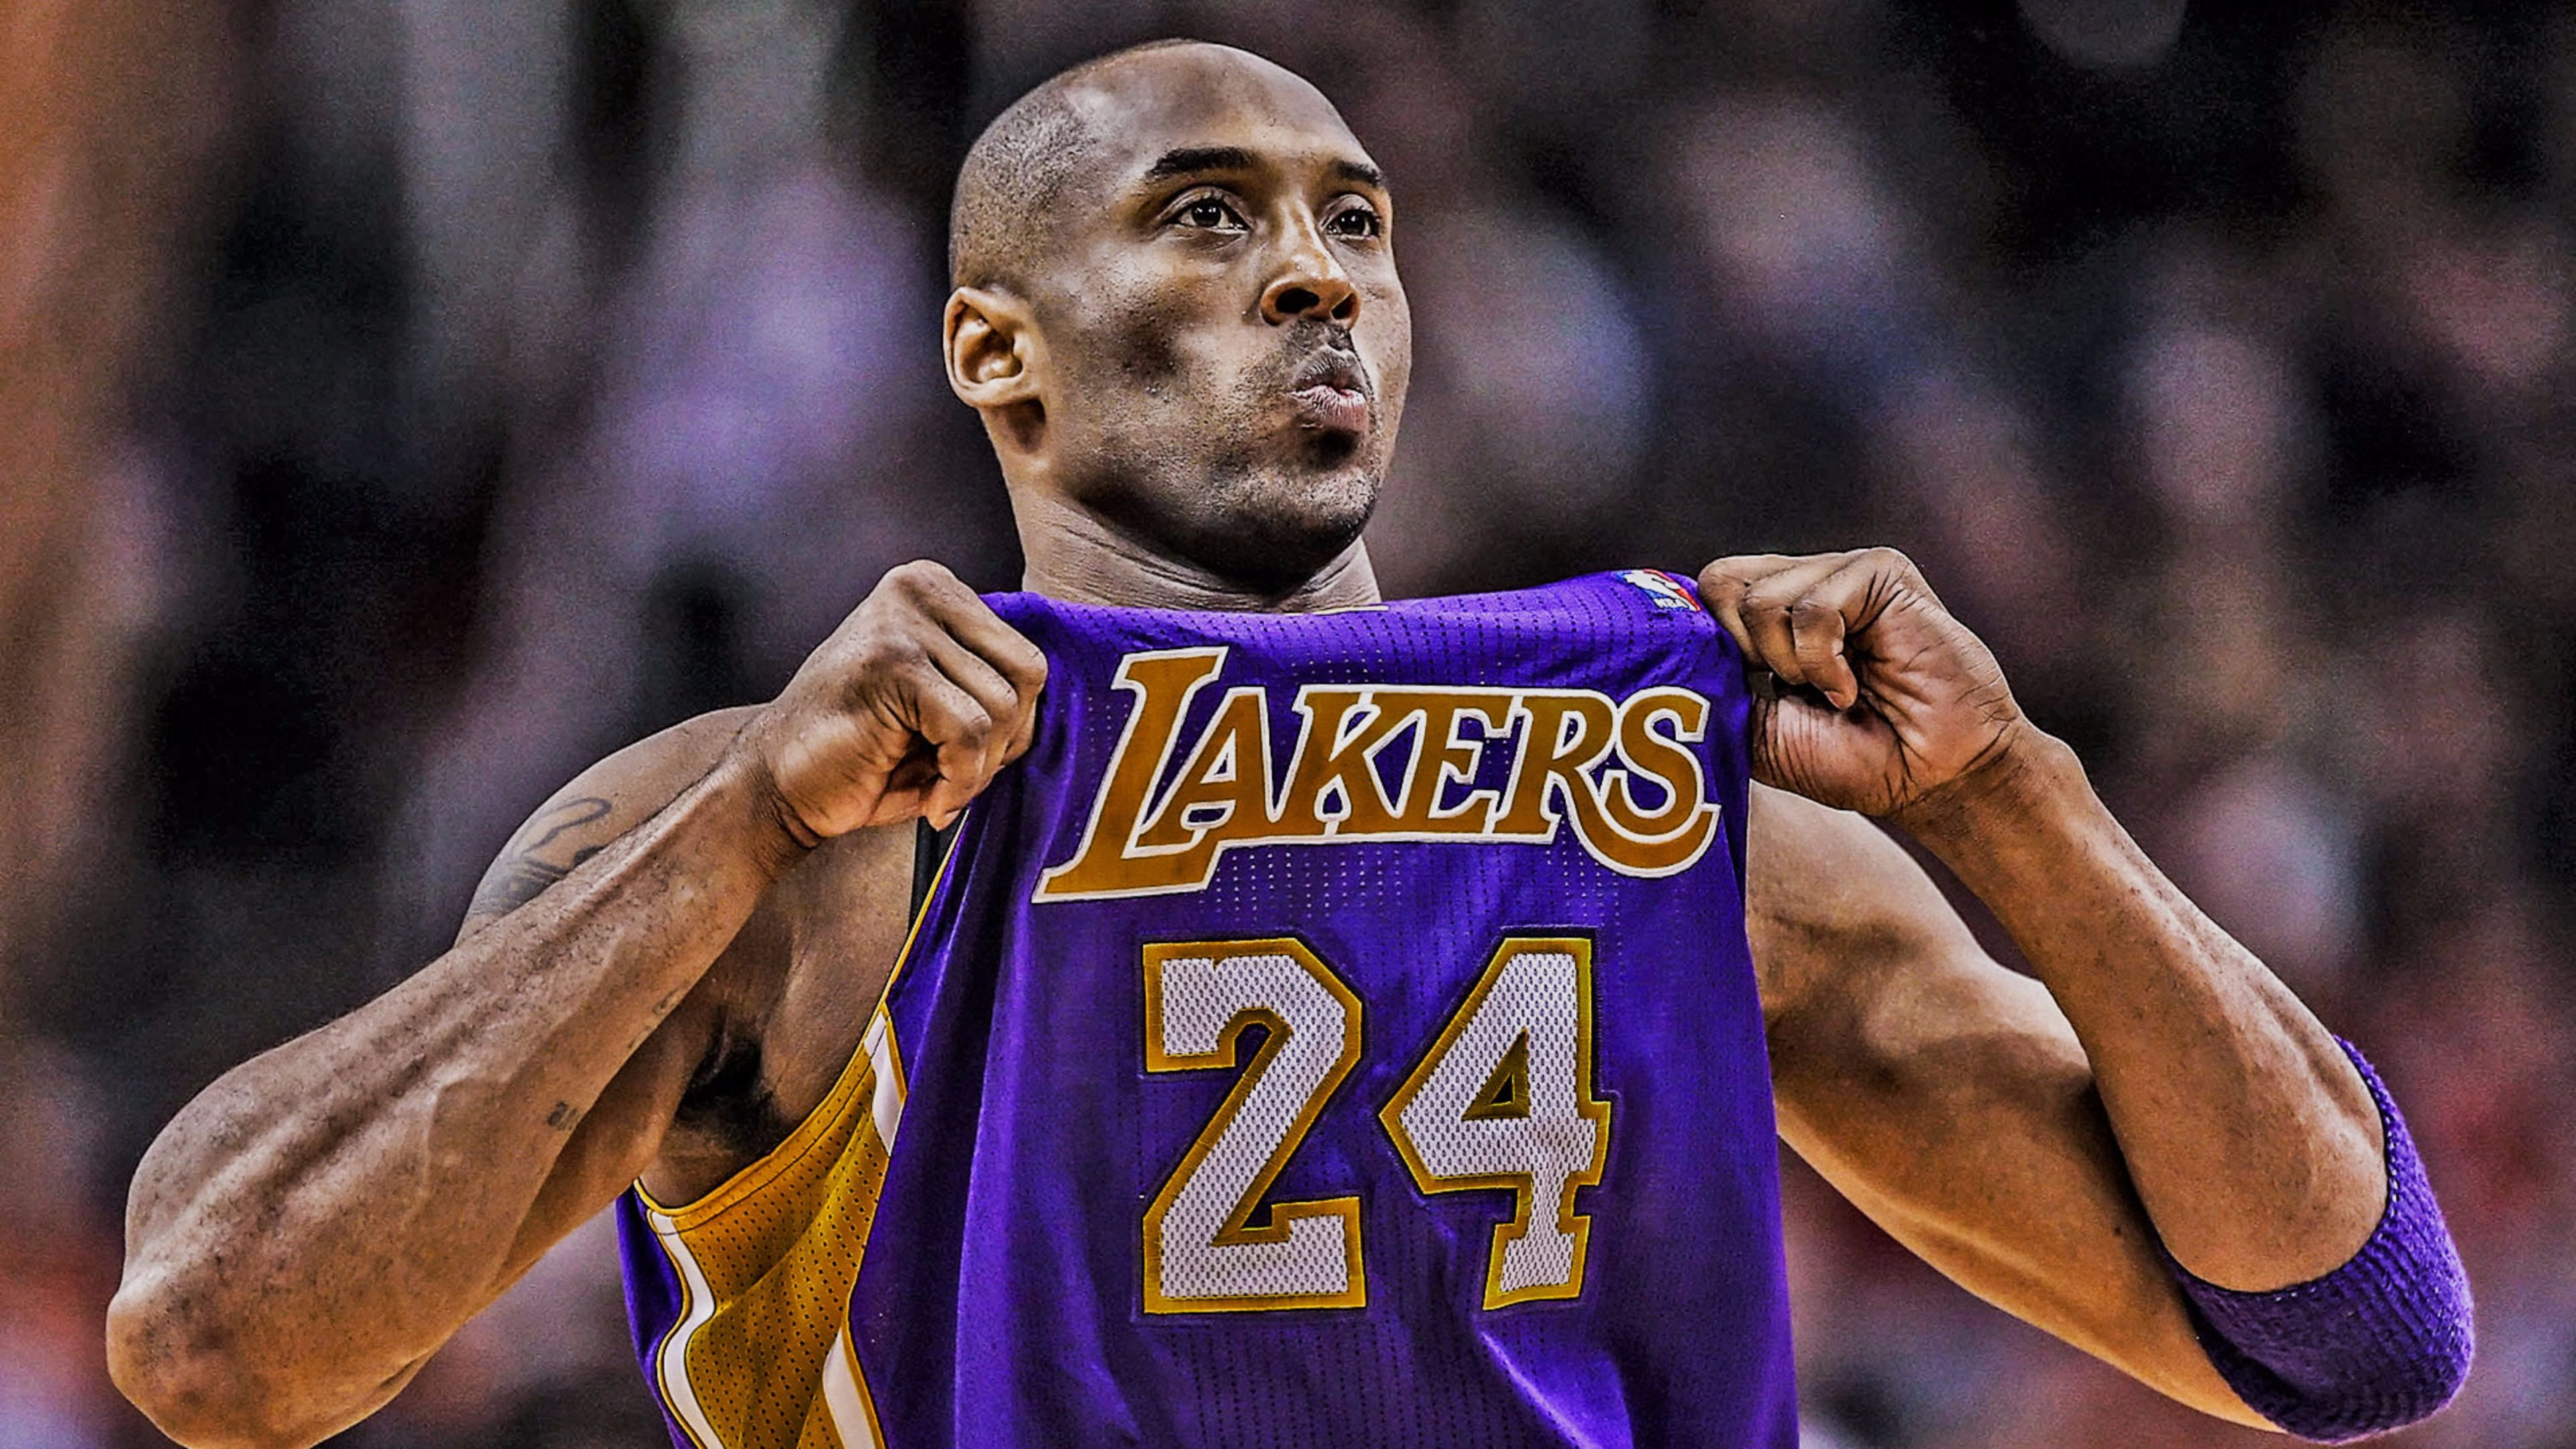 Kobe wallpaper ·① Download free cool High Resolution wallpapers for desktop computers and ...